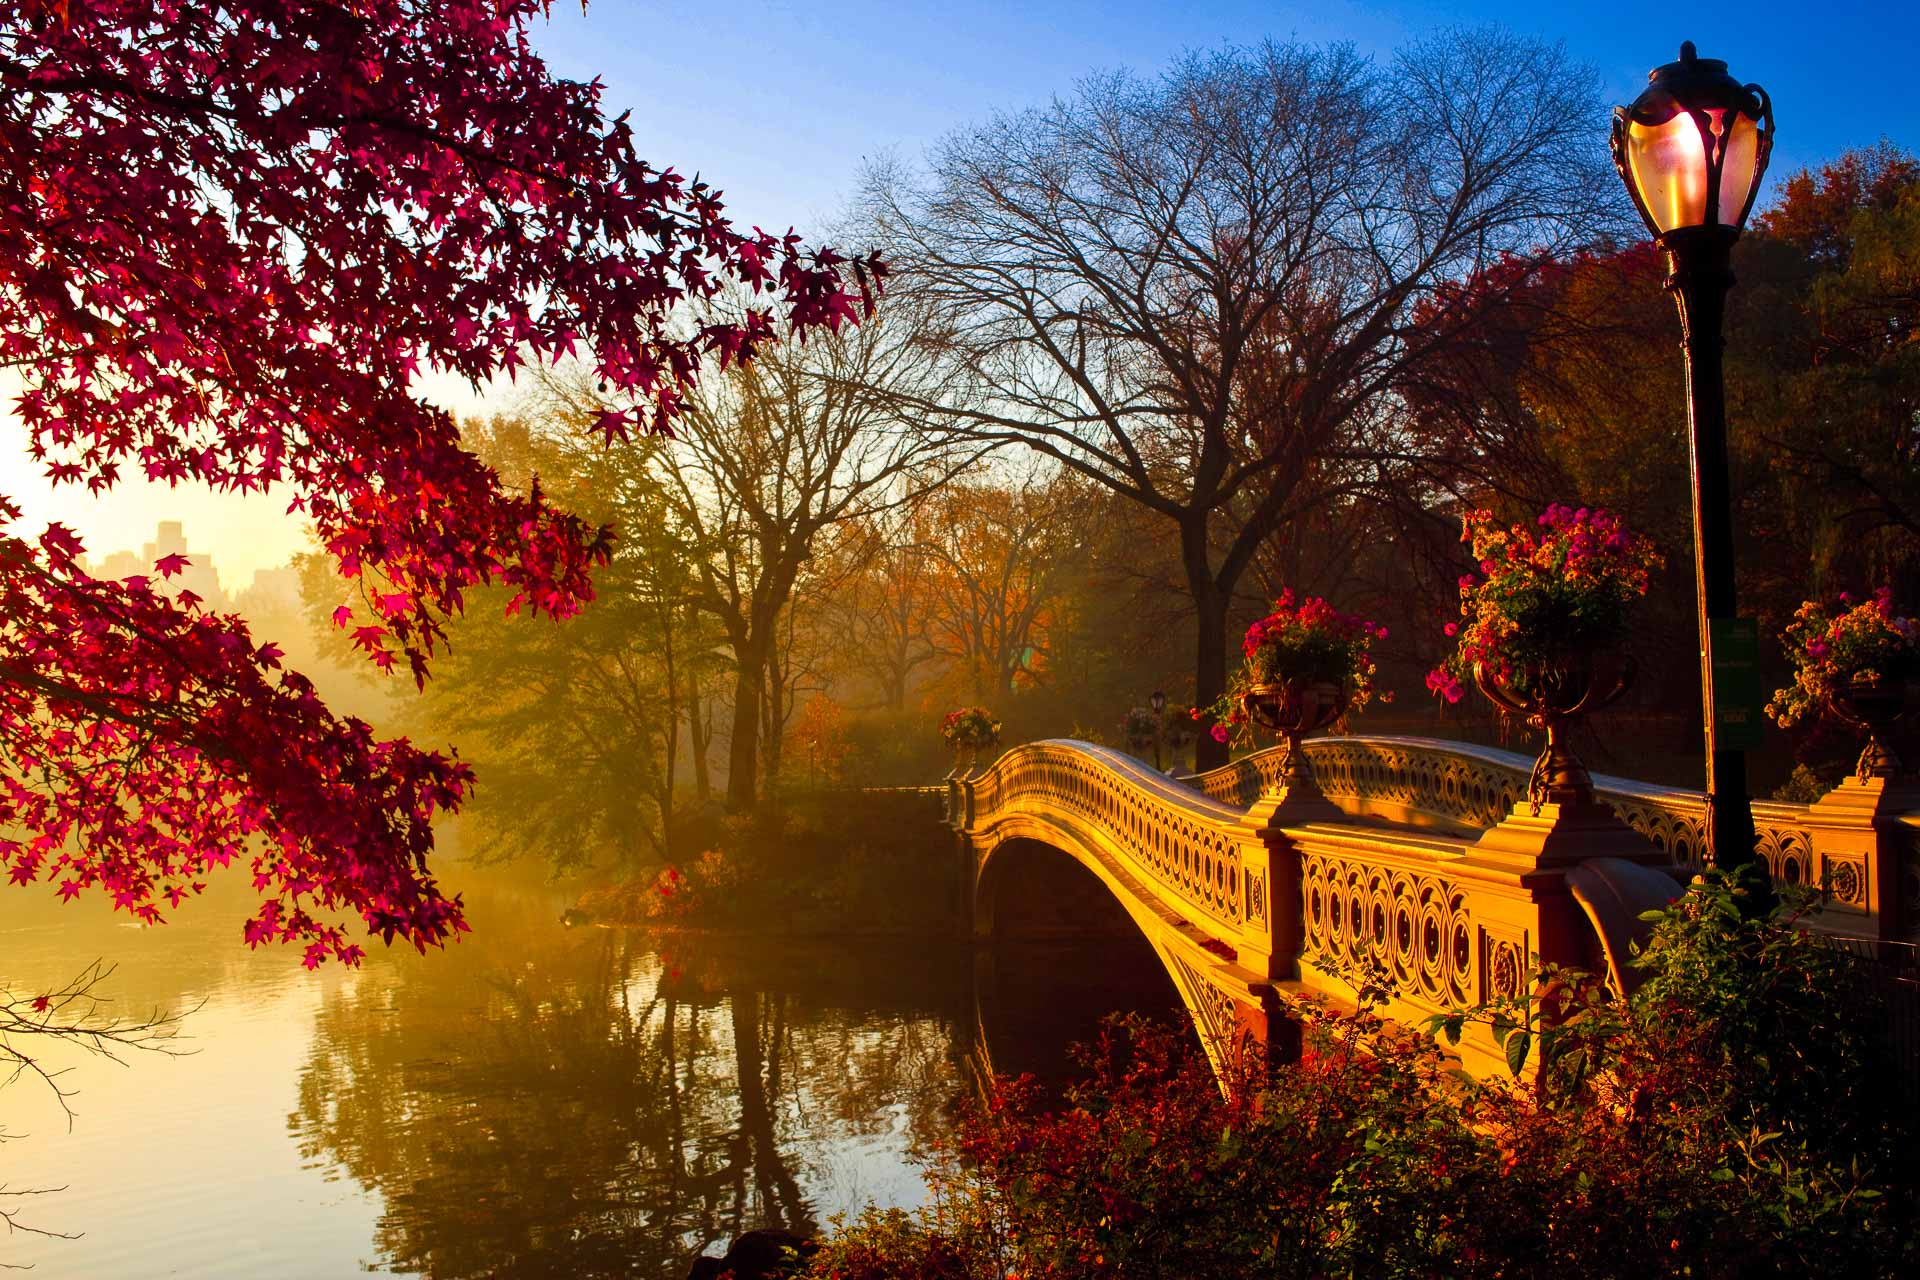 the Bow bridge in New York City's Central Park